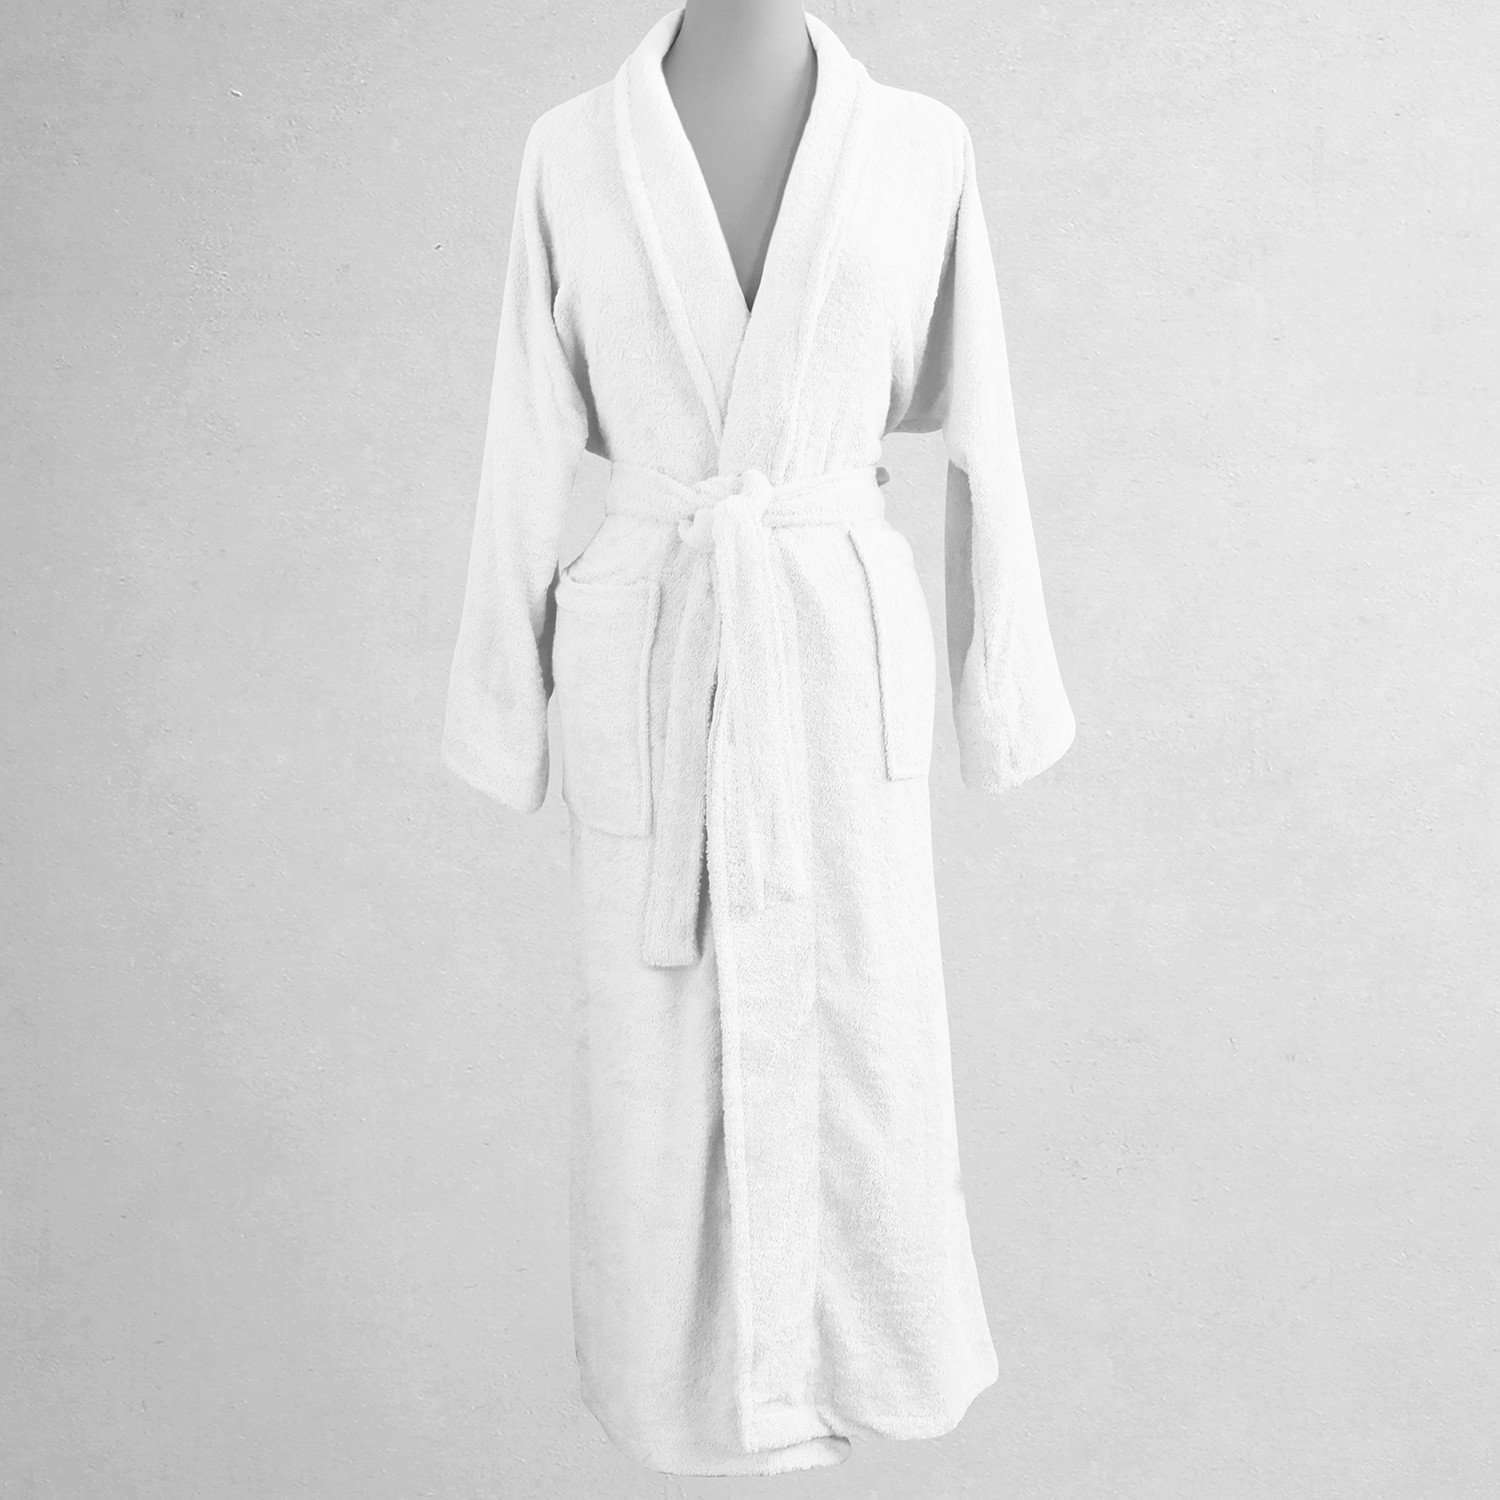 5th Avenue Unisex Egyptian Cotton Luxury Bathrobe - Luxor Linens 48c0a3160